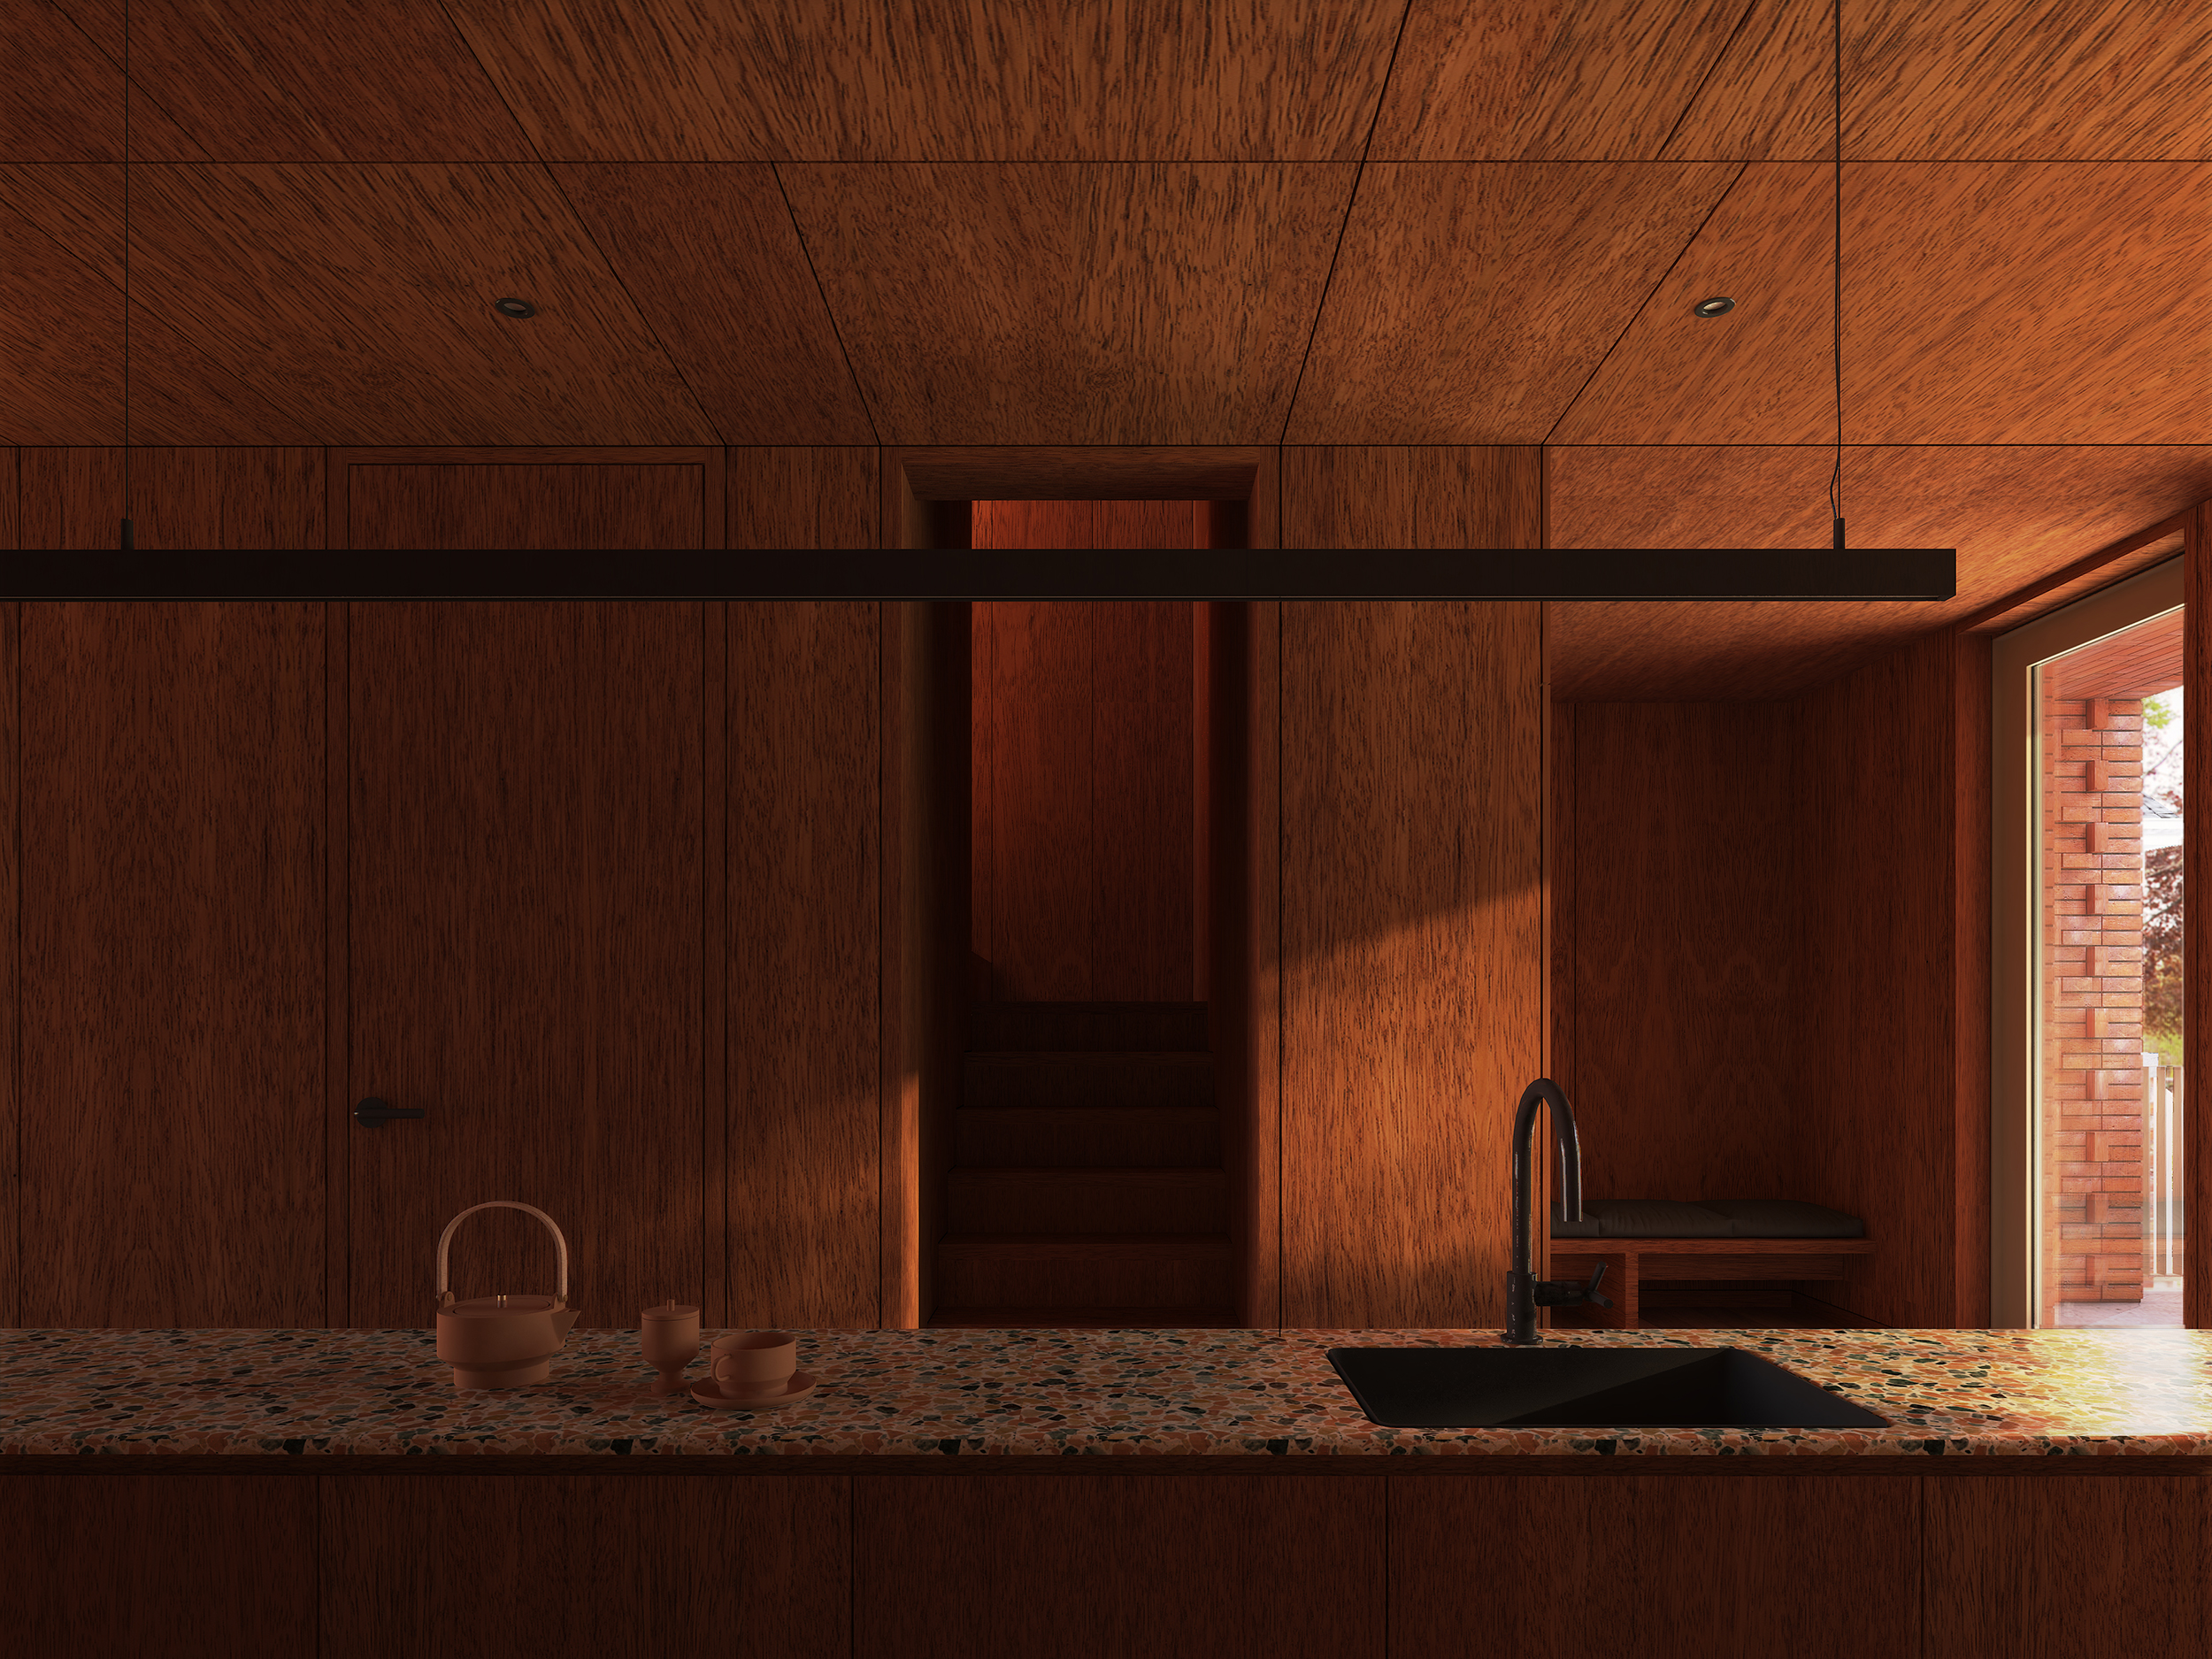 Kitchen space with view to entrance and staircase threshold, with terrazzo countertops and wood wall cladding